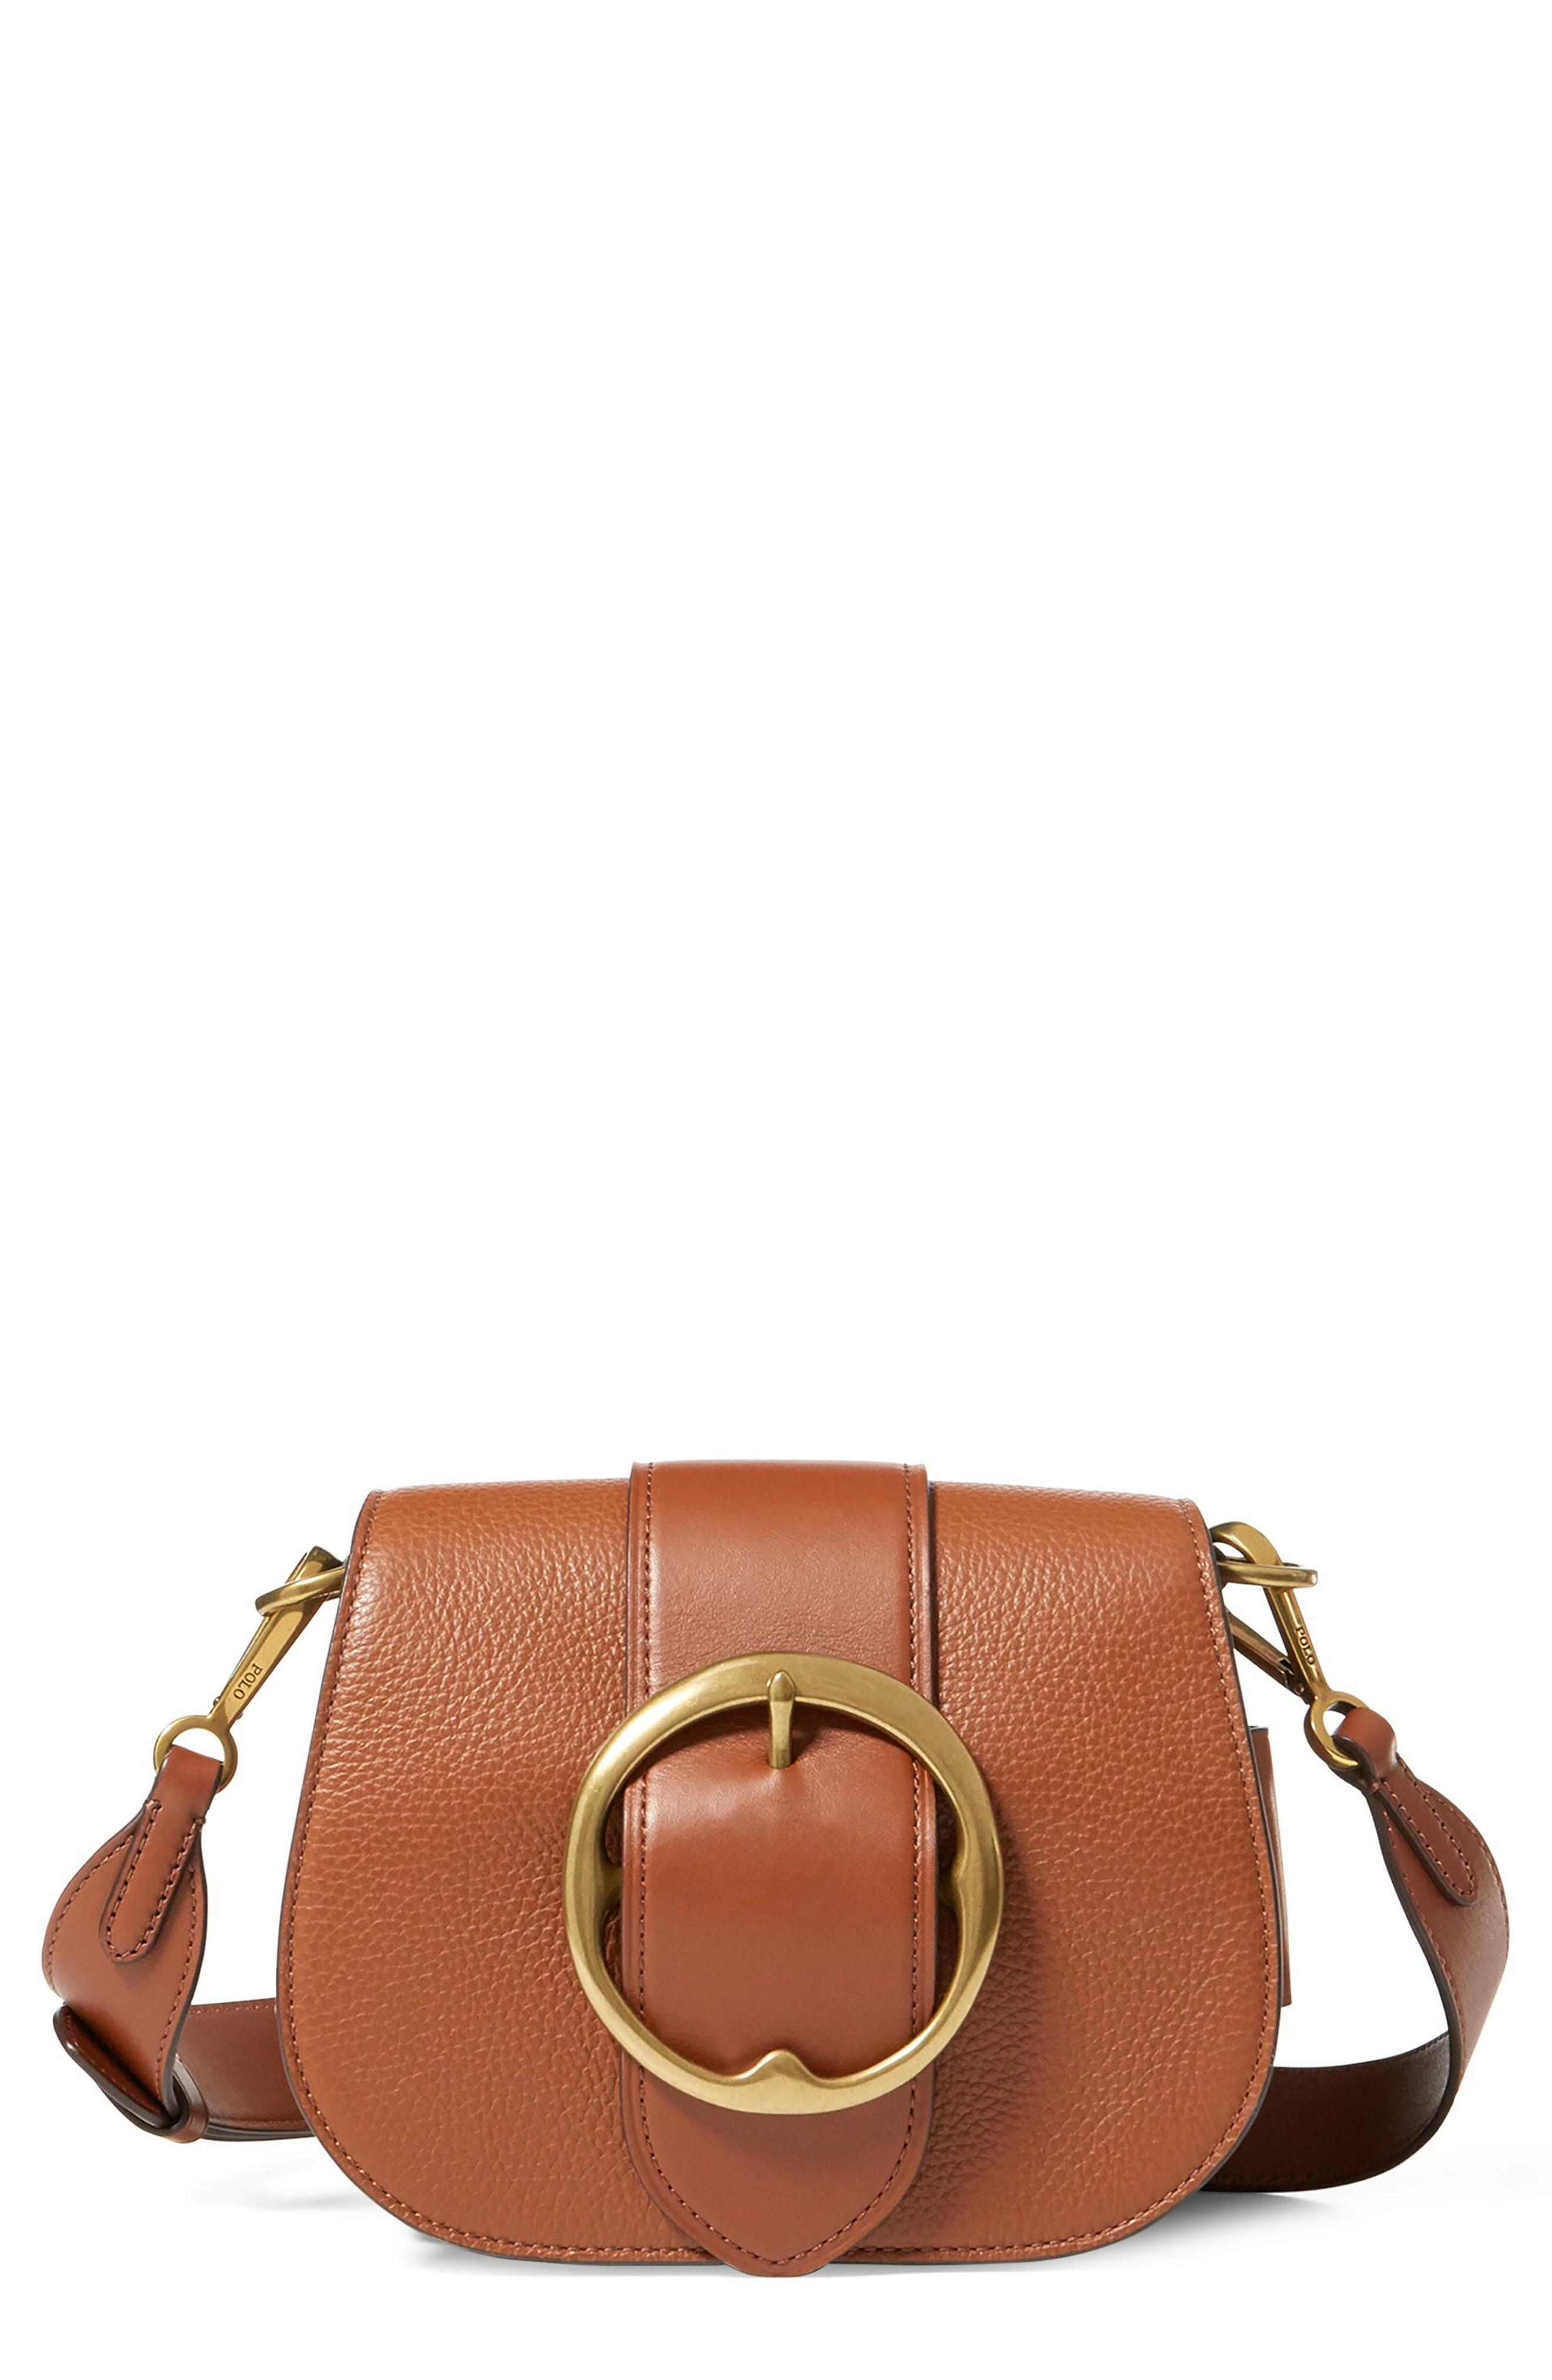 6ffa2251e6 An antique buckle unearthed from Ralph Lauren s archives inspired this  vintage-meets-modern bag crafted from supple Italian leather in a classic  saddle ...